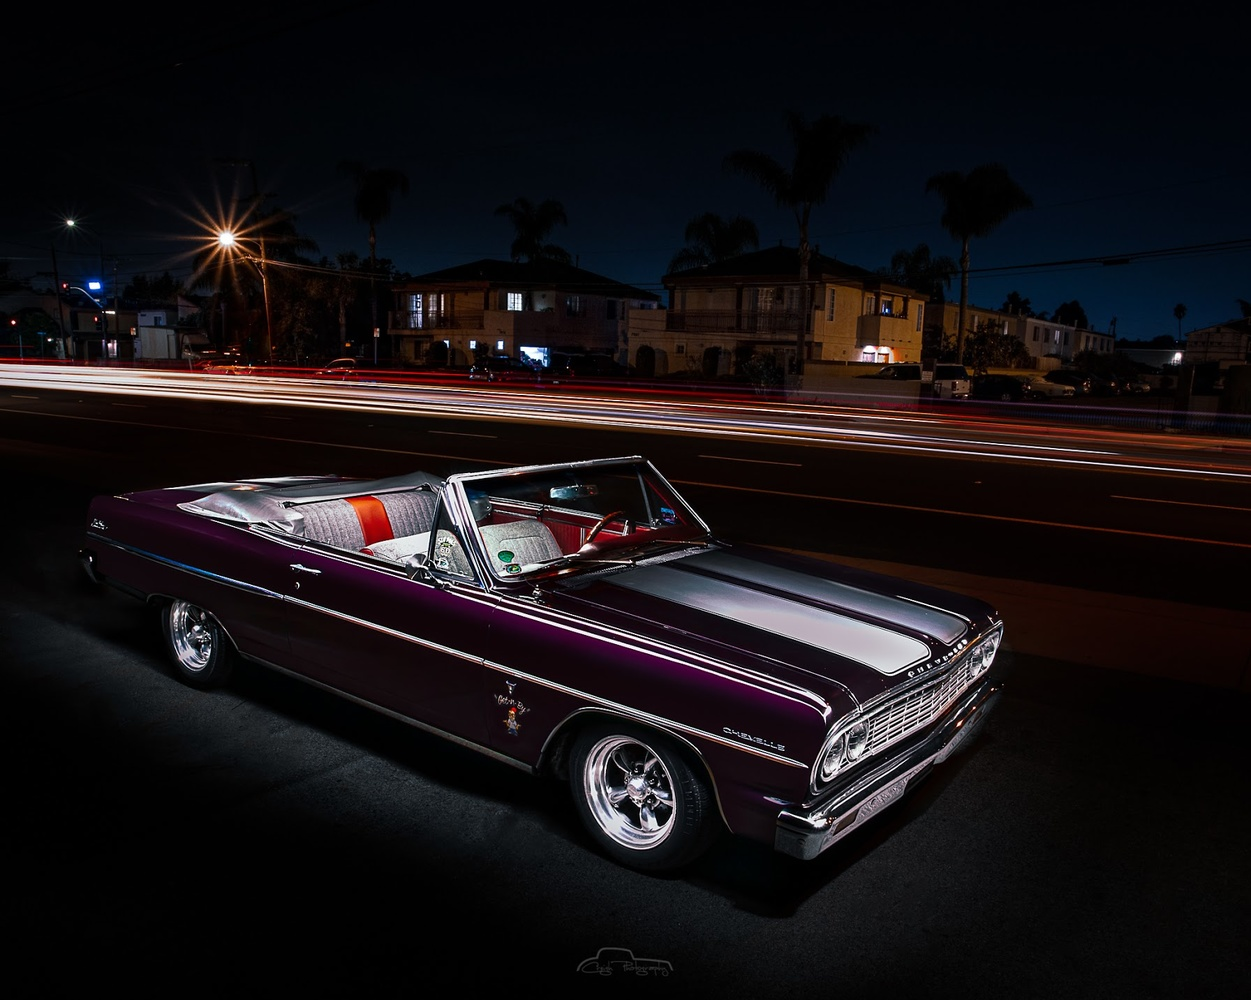 Black Cherry Chevelle by Creigh McIntyre